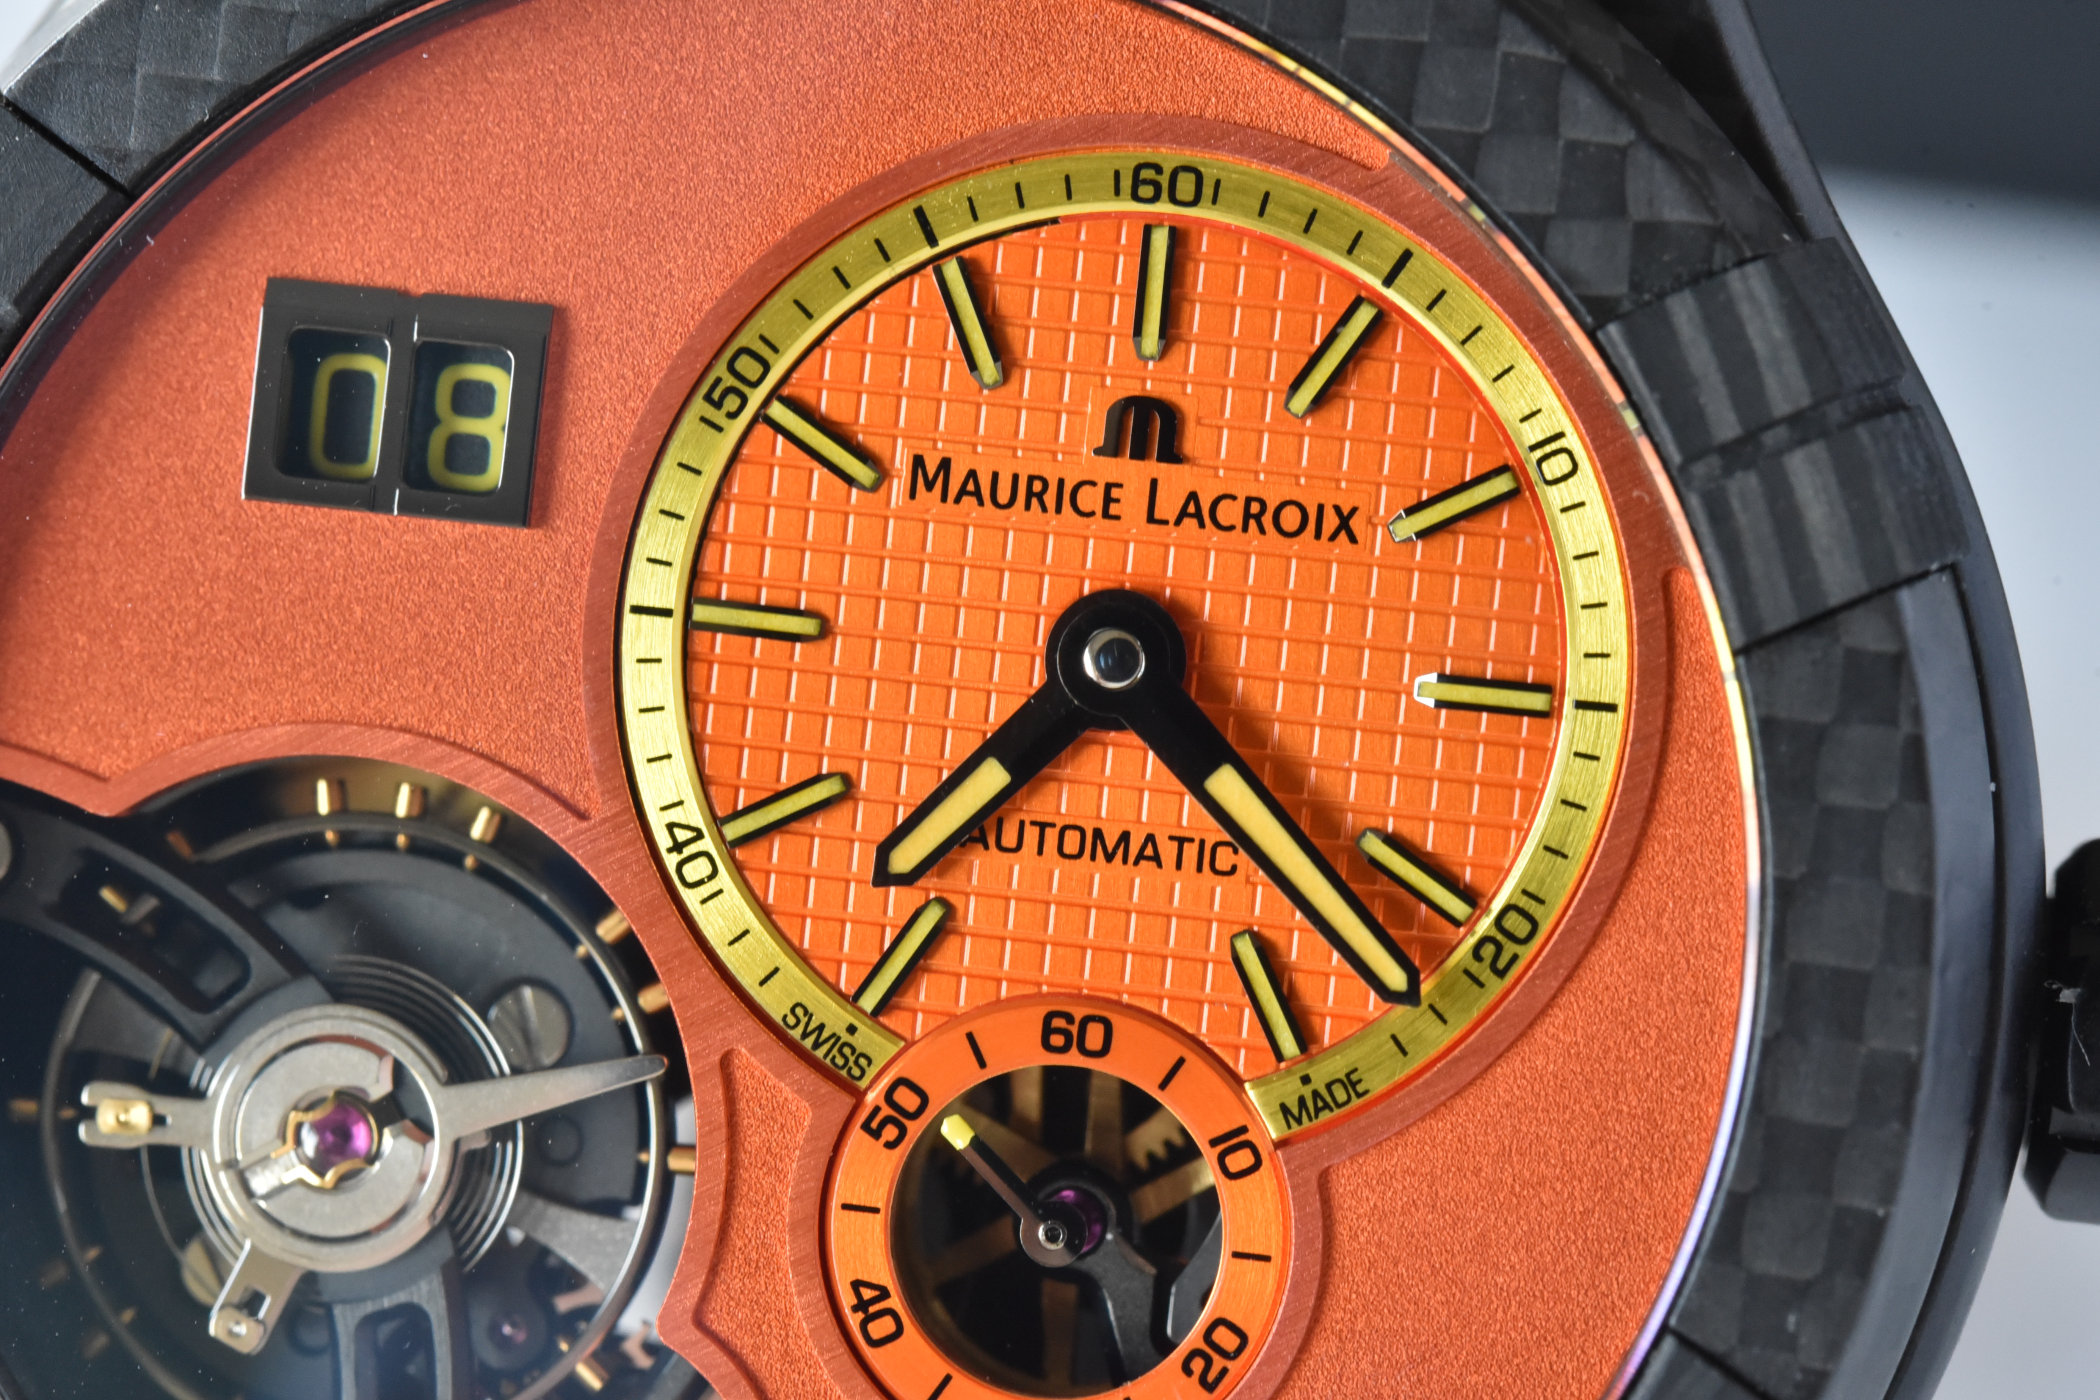 Maurice Lacroix Aikon Master Big Date Only Watch 2021 4